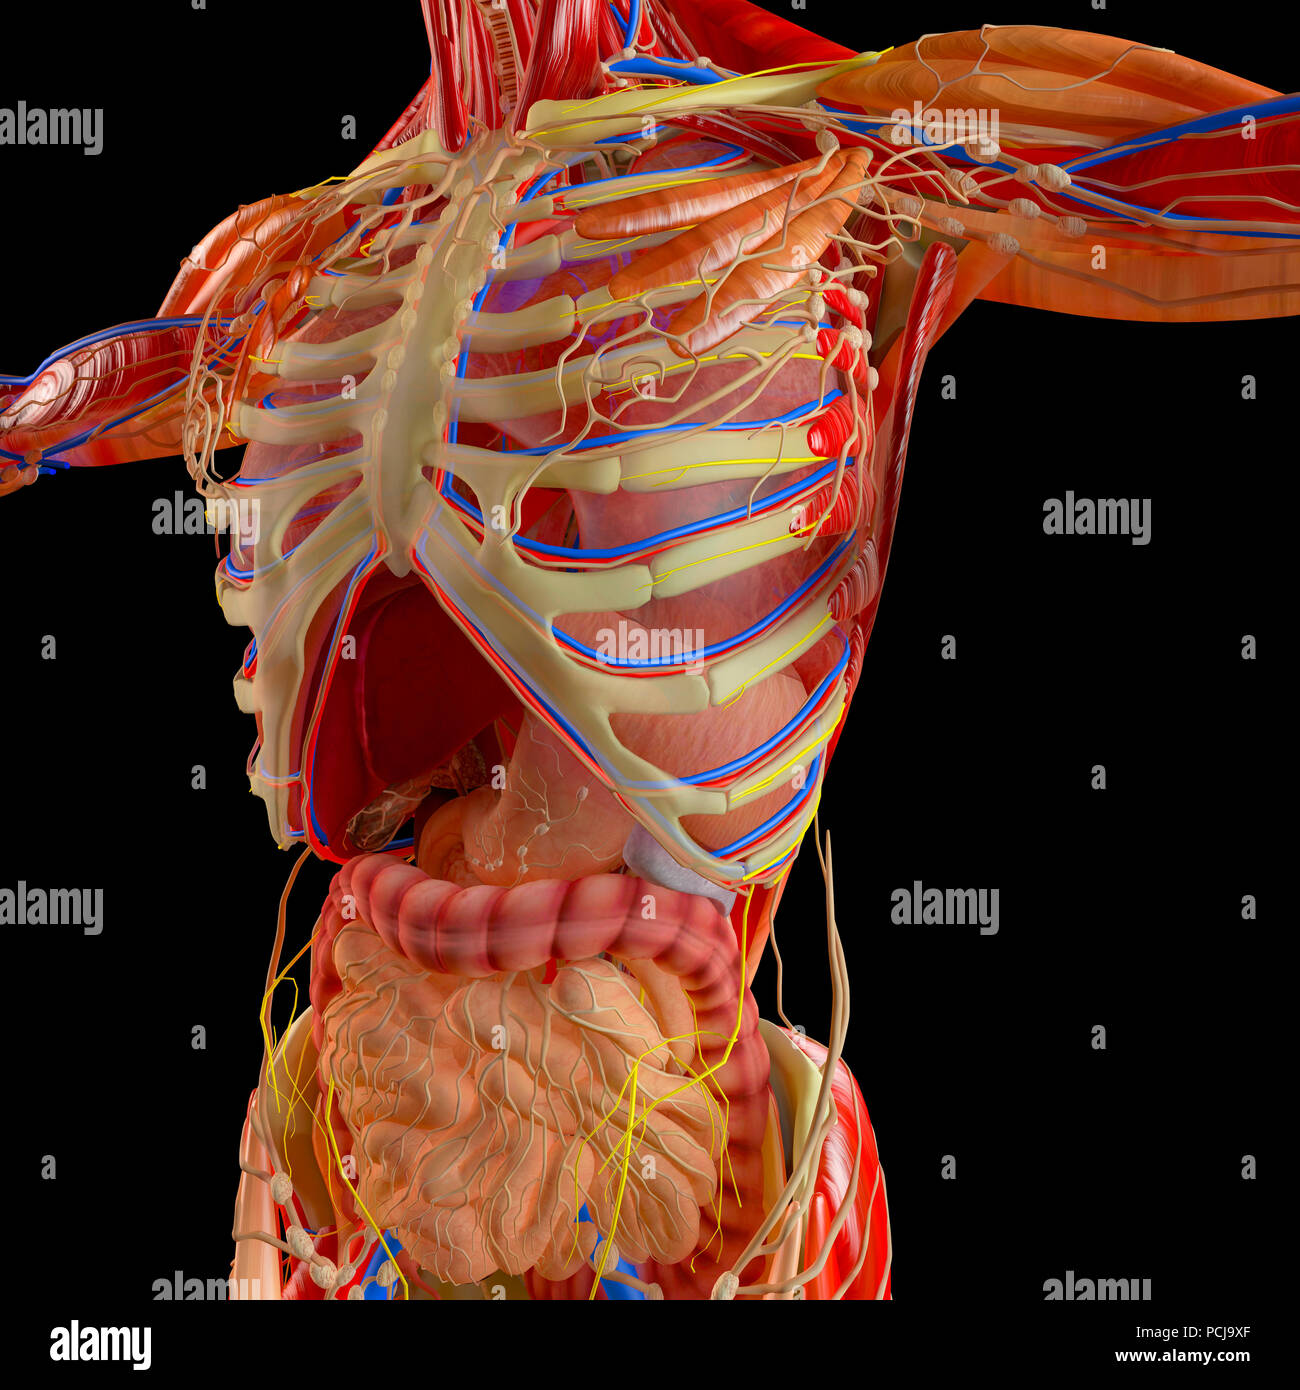 Human Body Muscular System Digestive System Anatomy Stomach